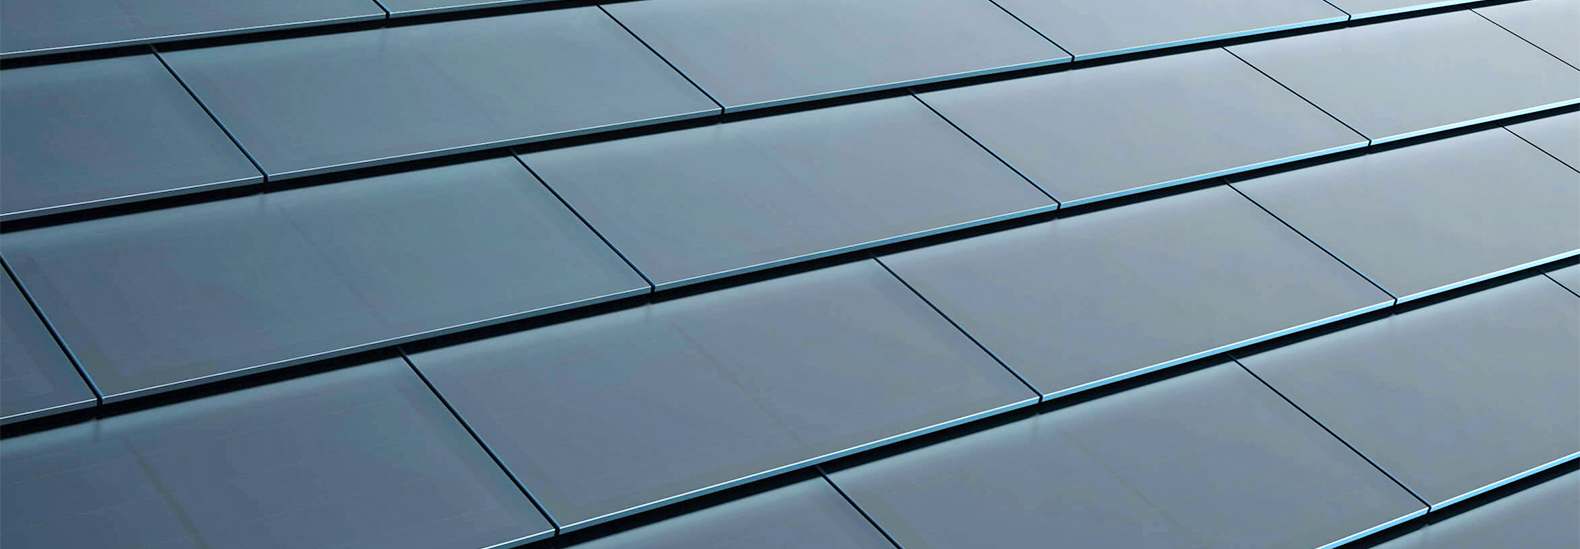 Tesla is selling its solar products in Home Depot stores starting in ...